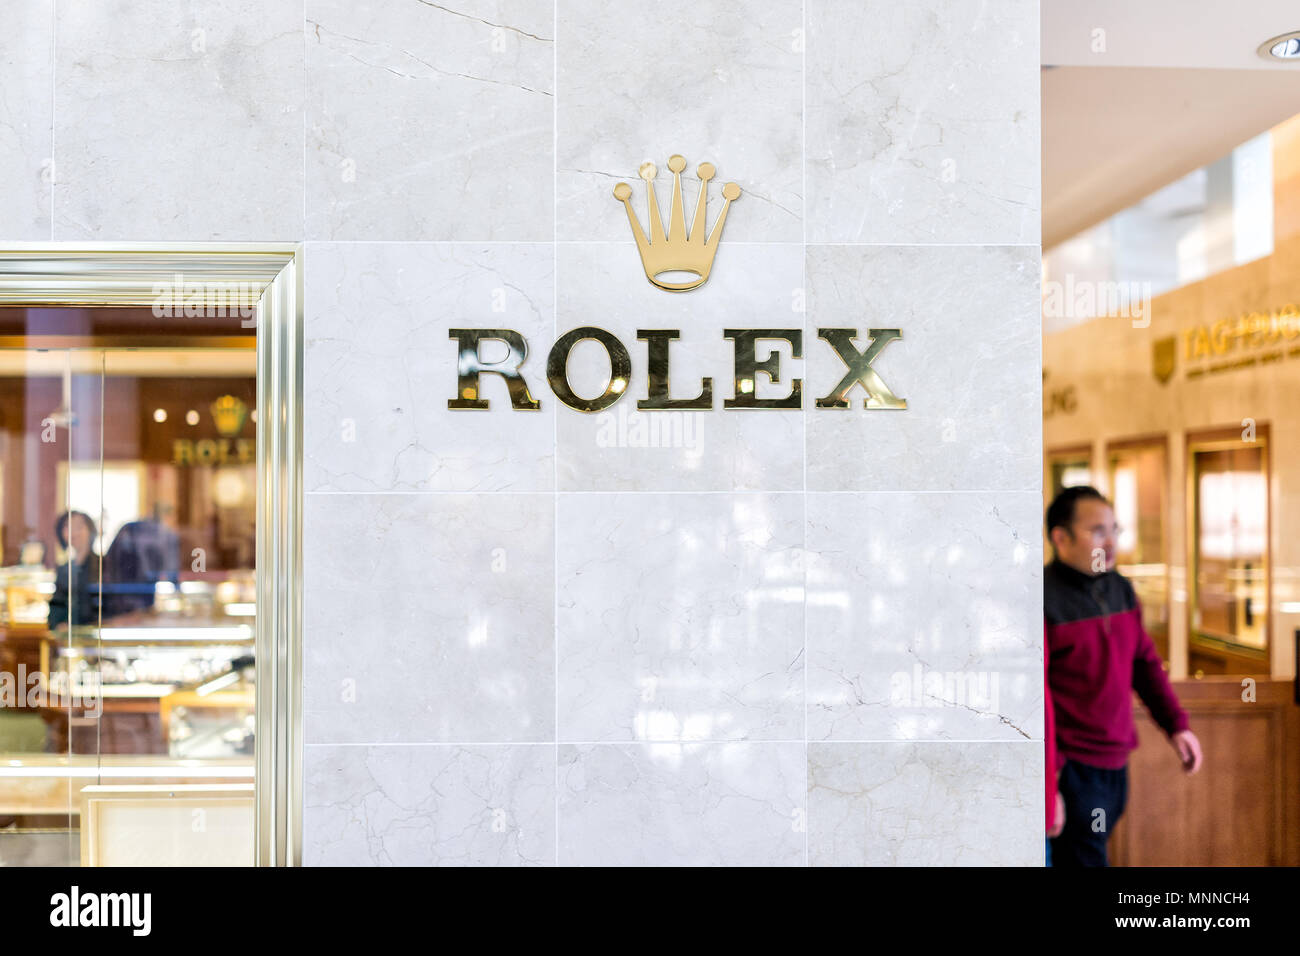 Tysons, USA - January 26, 2018: Rolex closeup store sign entrance watch time shopping in Tyson's Corner Mall in Fairfax, Virginia by Mclean - Stock Image